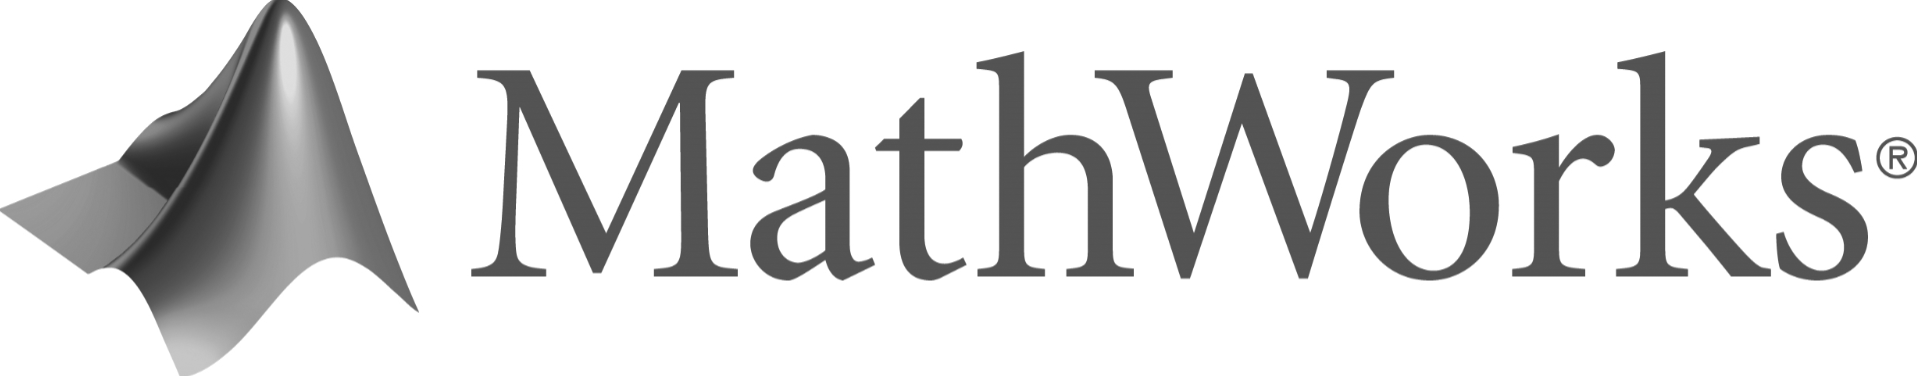 MathWorks_logo black and white